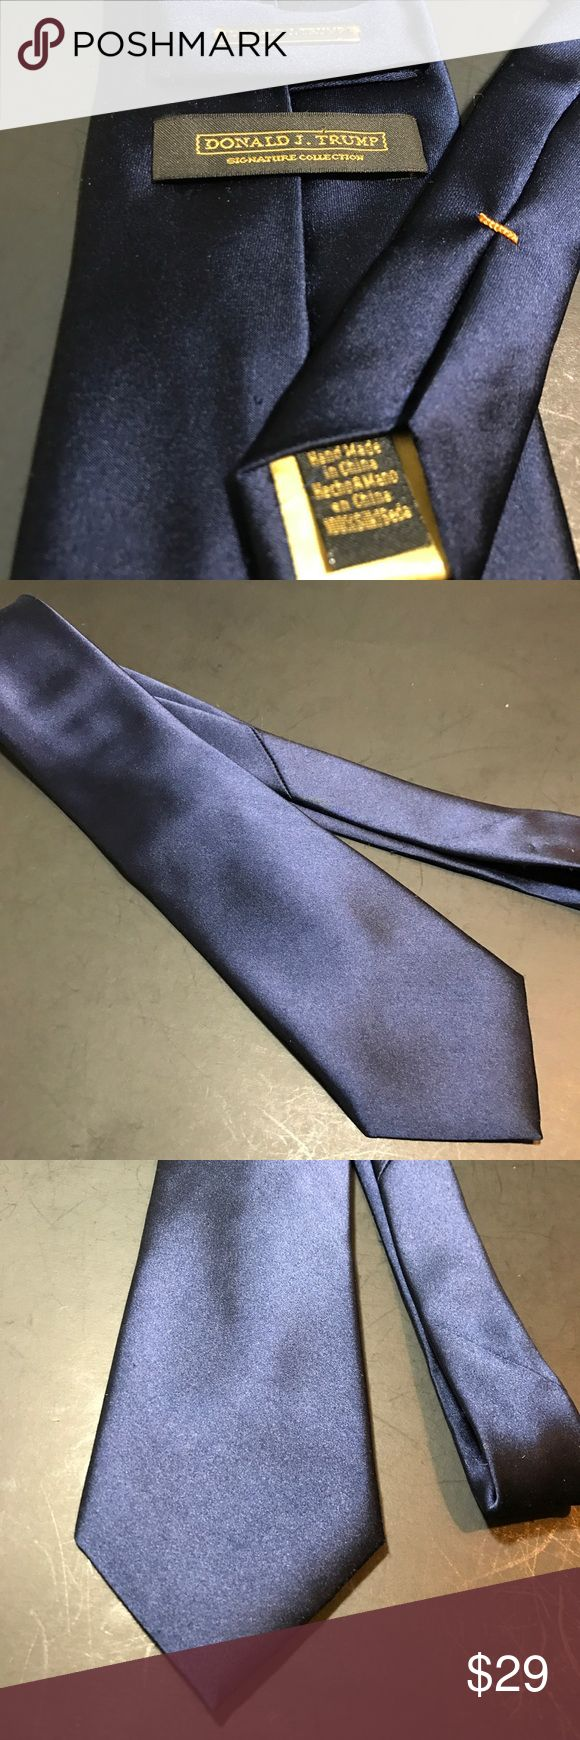 """Donald J Trump navy presidential power tie silk Business power tie for the big meeting. Silky smooth. 60"""" x 3 7/8"""". No flaws. donald Trump Accessories Ties"""